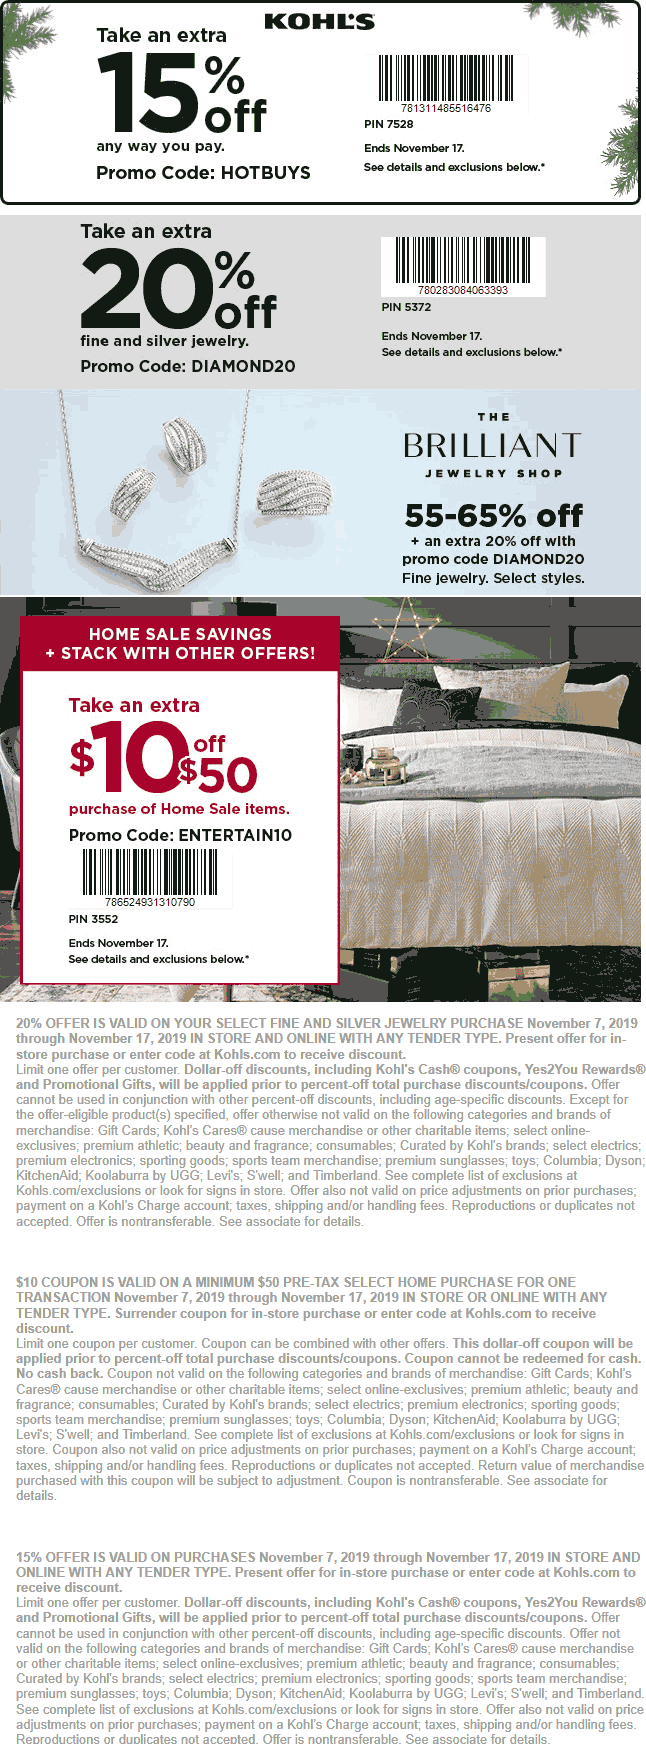 Kohls Coupon December 2019 15% off & more at Kohls, or online via promo code HOTBUYS